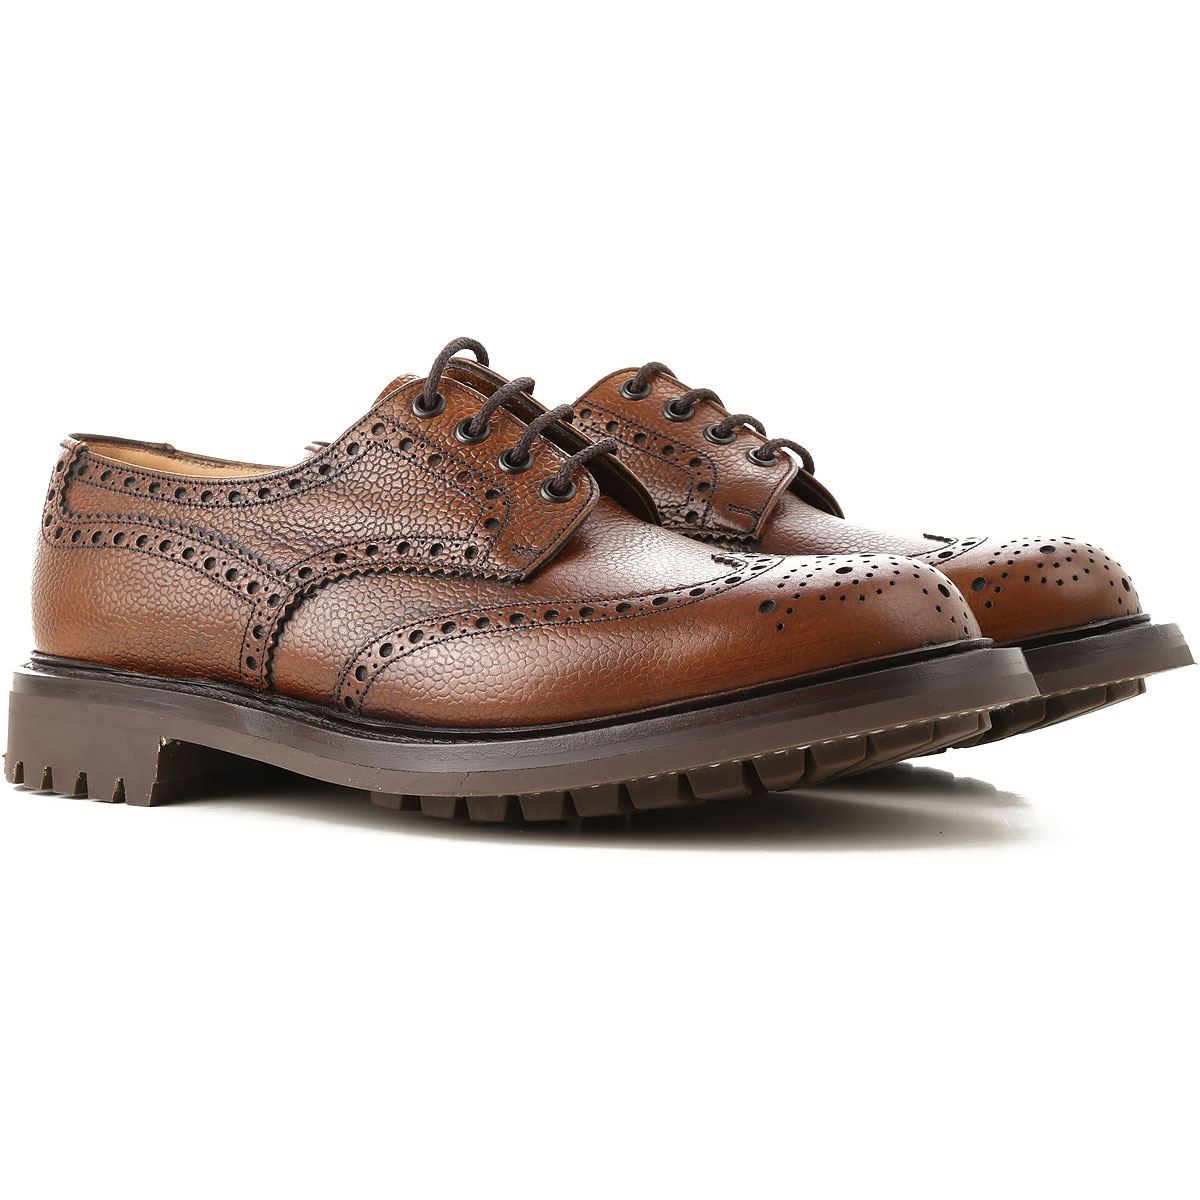 Image of Church's Brogue Shoes, walnut, Leather, 2017, 10 11 7.5 8 8.5 9 9.5